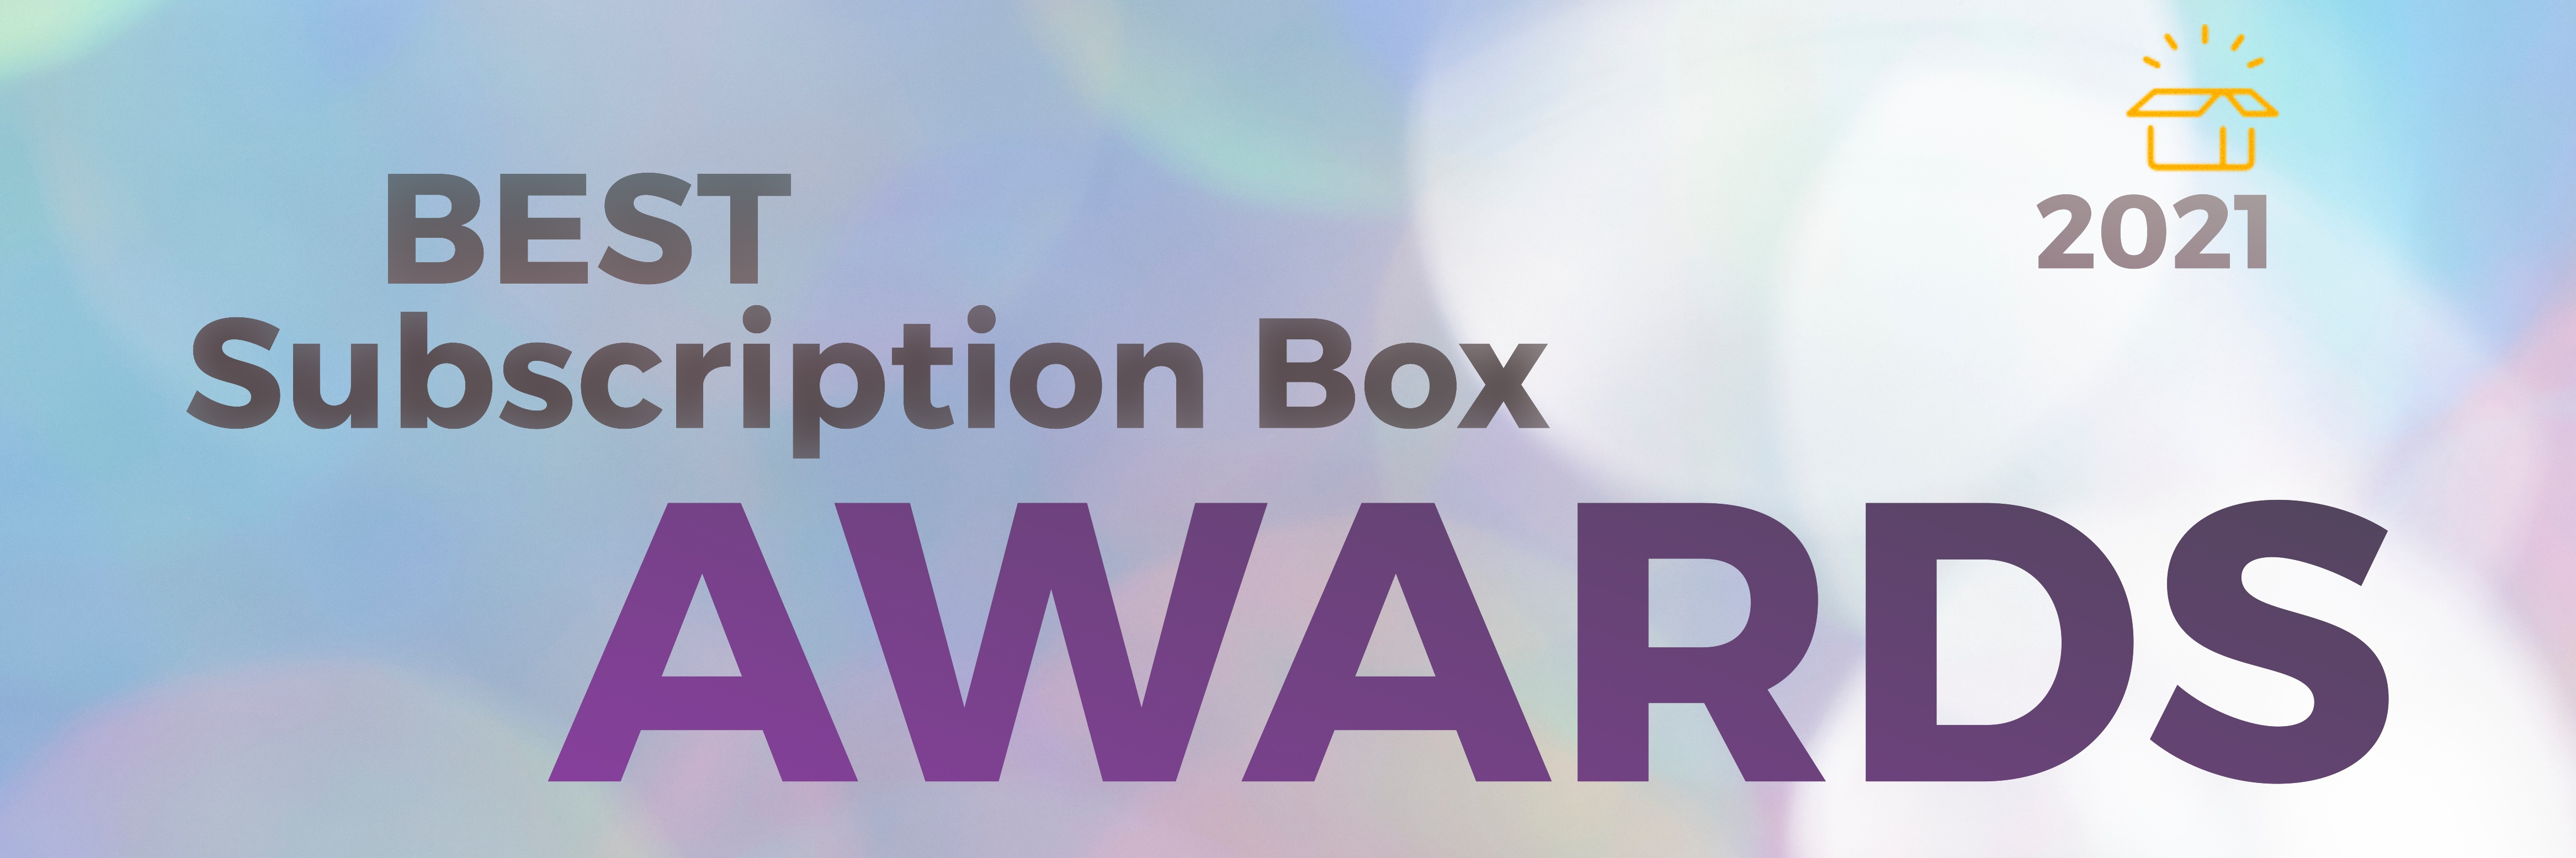 vote for best subscription boxes